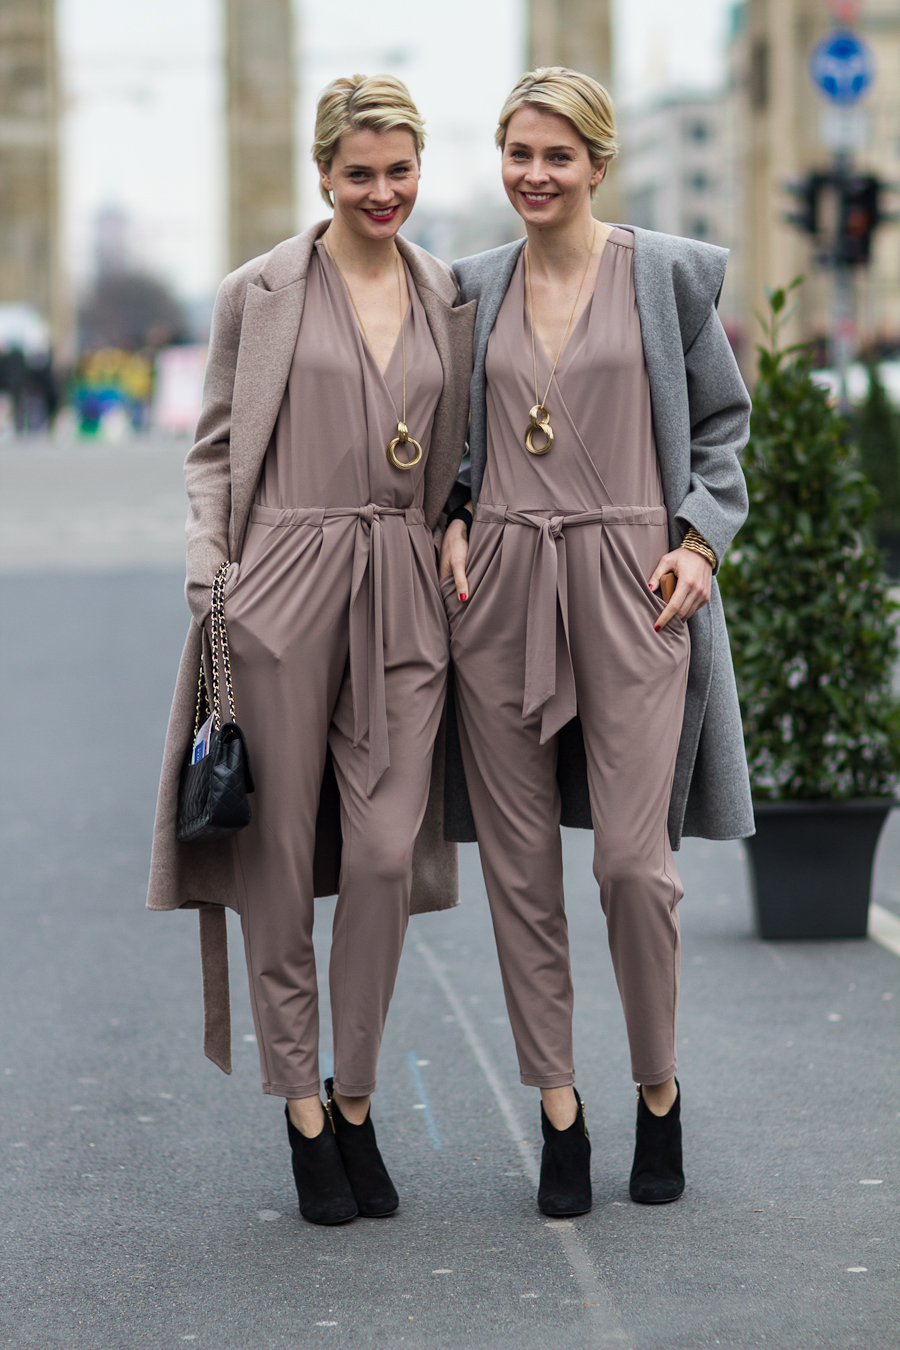 street-style-fashion-blog-innsbruck-berlin-fashion-week-nina-julia-meise